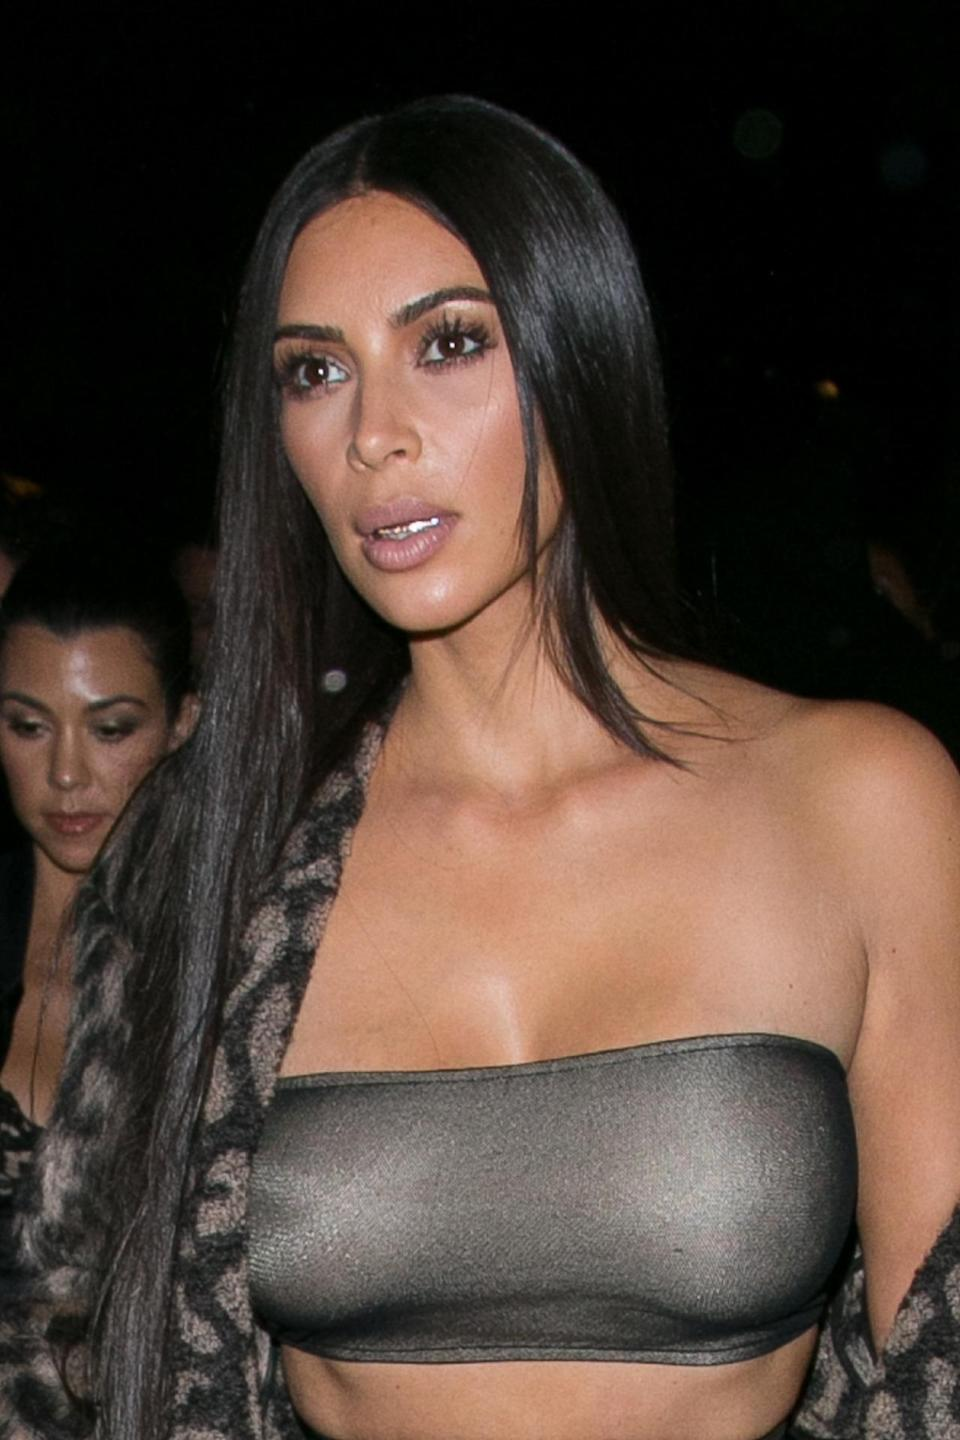 <p>Not only does Kardashian West accessorize her extremities — she also blings out her teeth. Designer Dolly Cohen's grillz start around $200, but Kardashian West's are believed to be worth much more considering they appear to be made of solid gold and diamonds. <i>(Photo: Getty Images)</i><br></p>